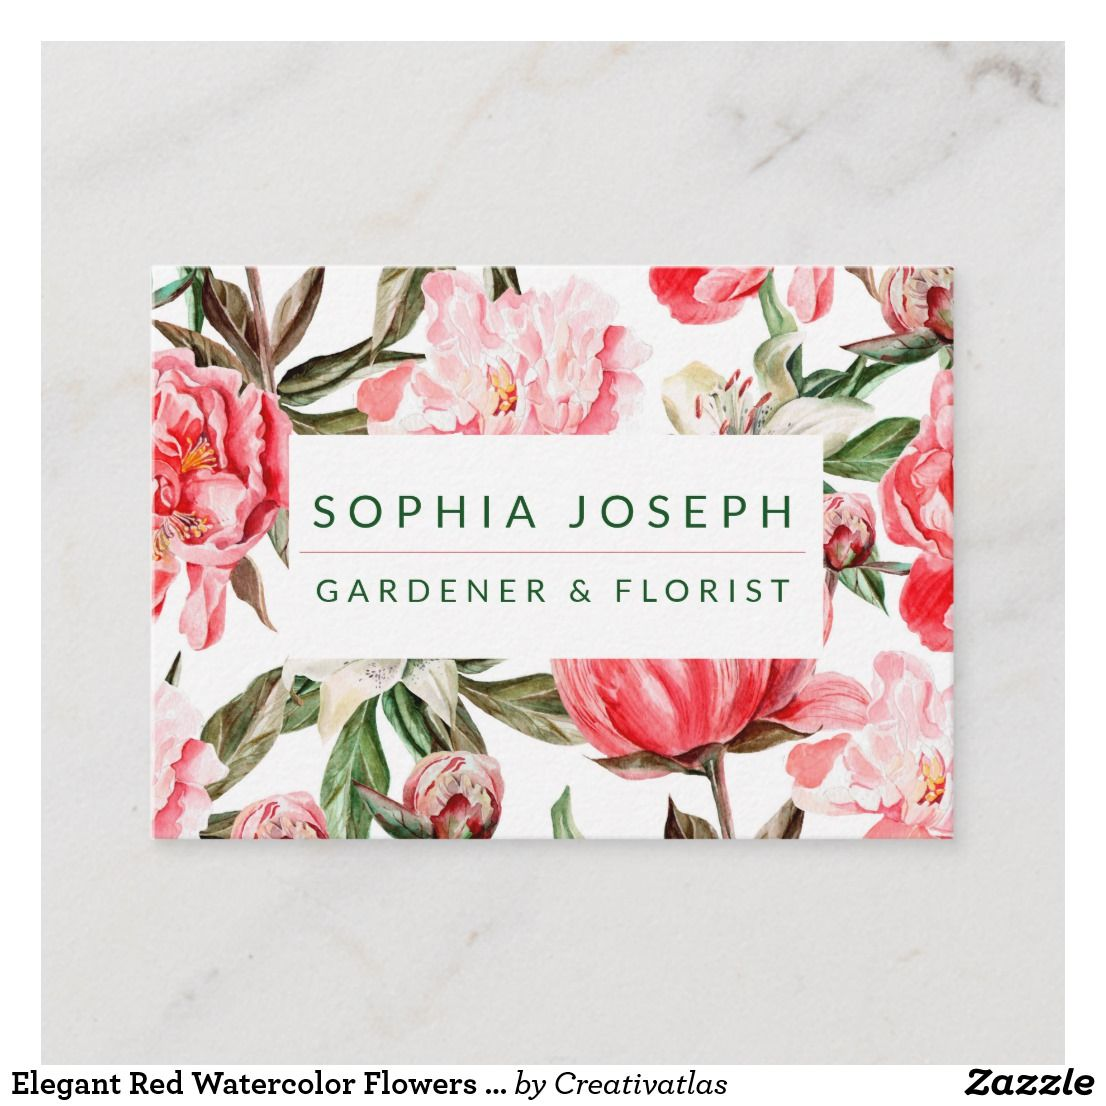 Floral Red Pink Watercolor Flowers Business Card Zazzle Com In 2021 Floral Business Cards Pink Watercolor Flower Flower Business